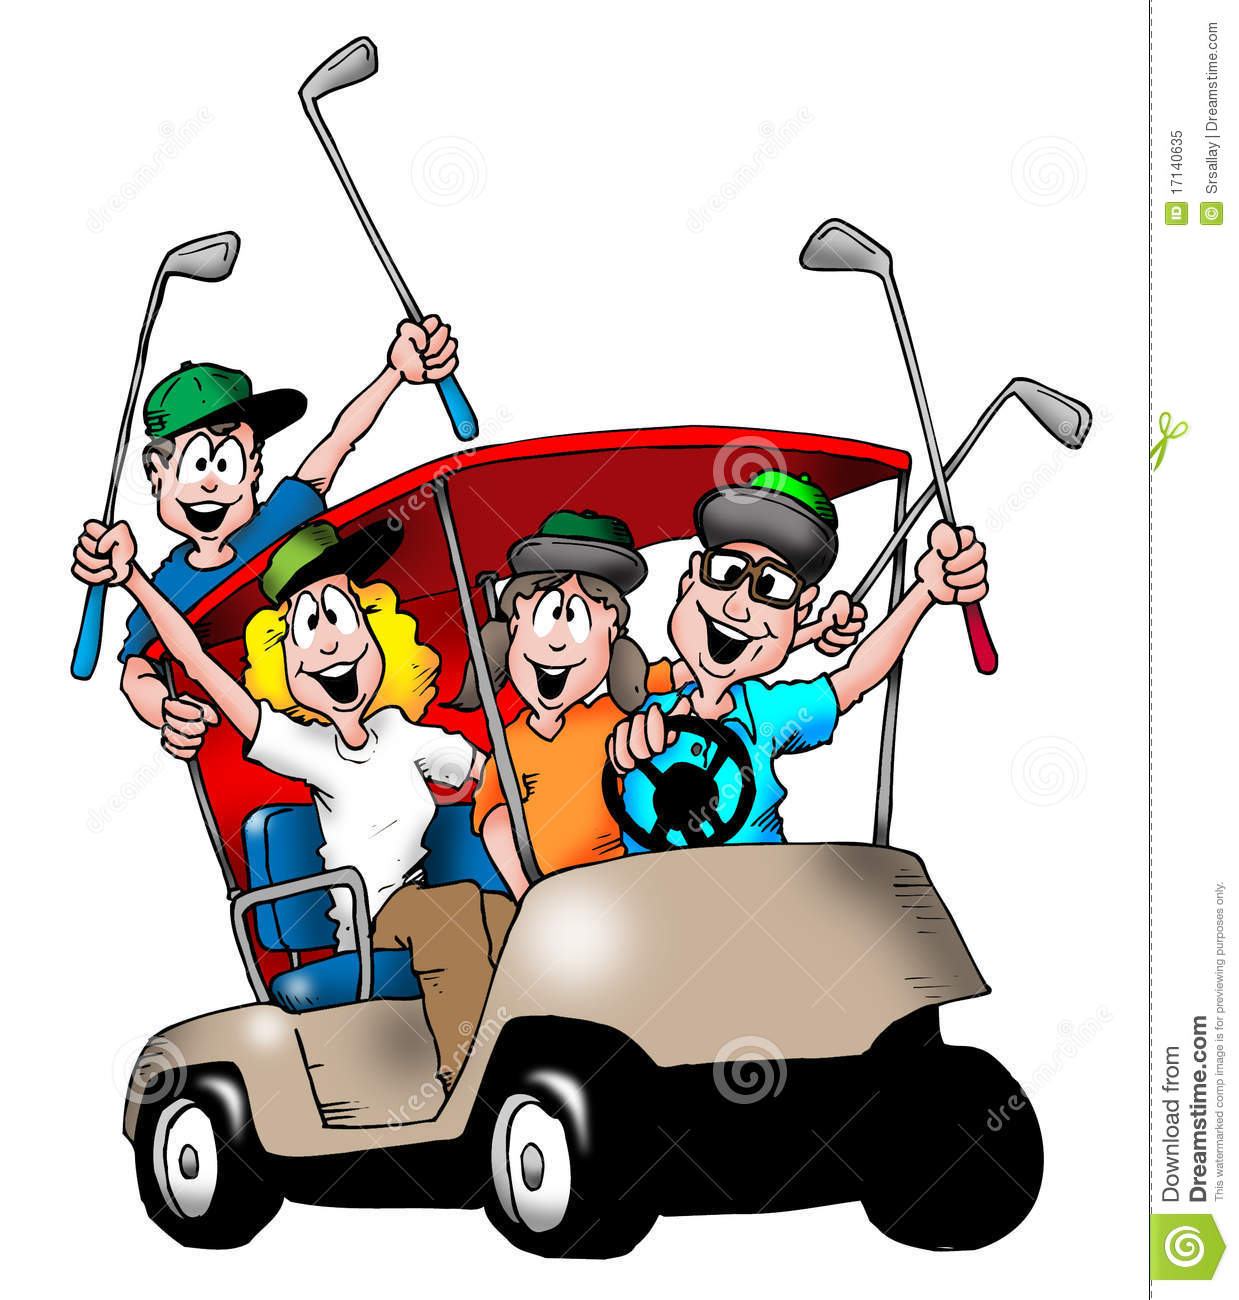 Golf clipart golf group. Free images